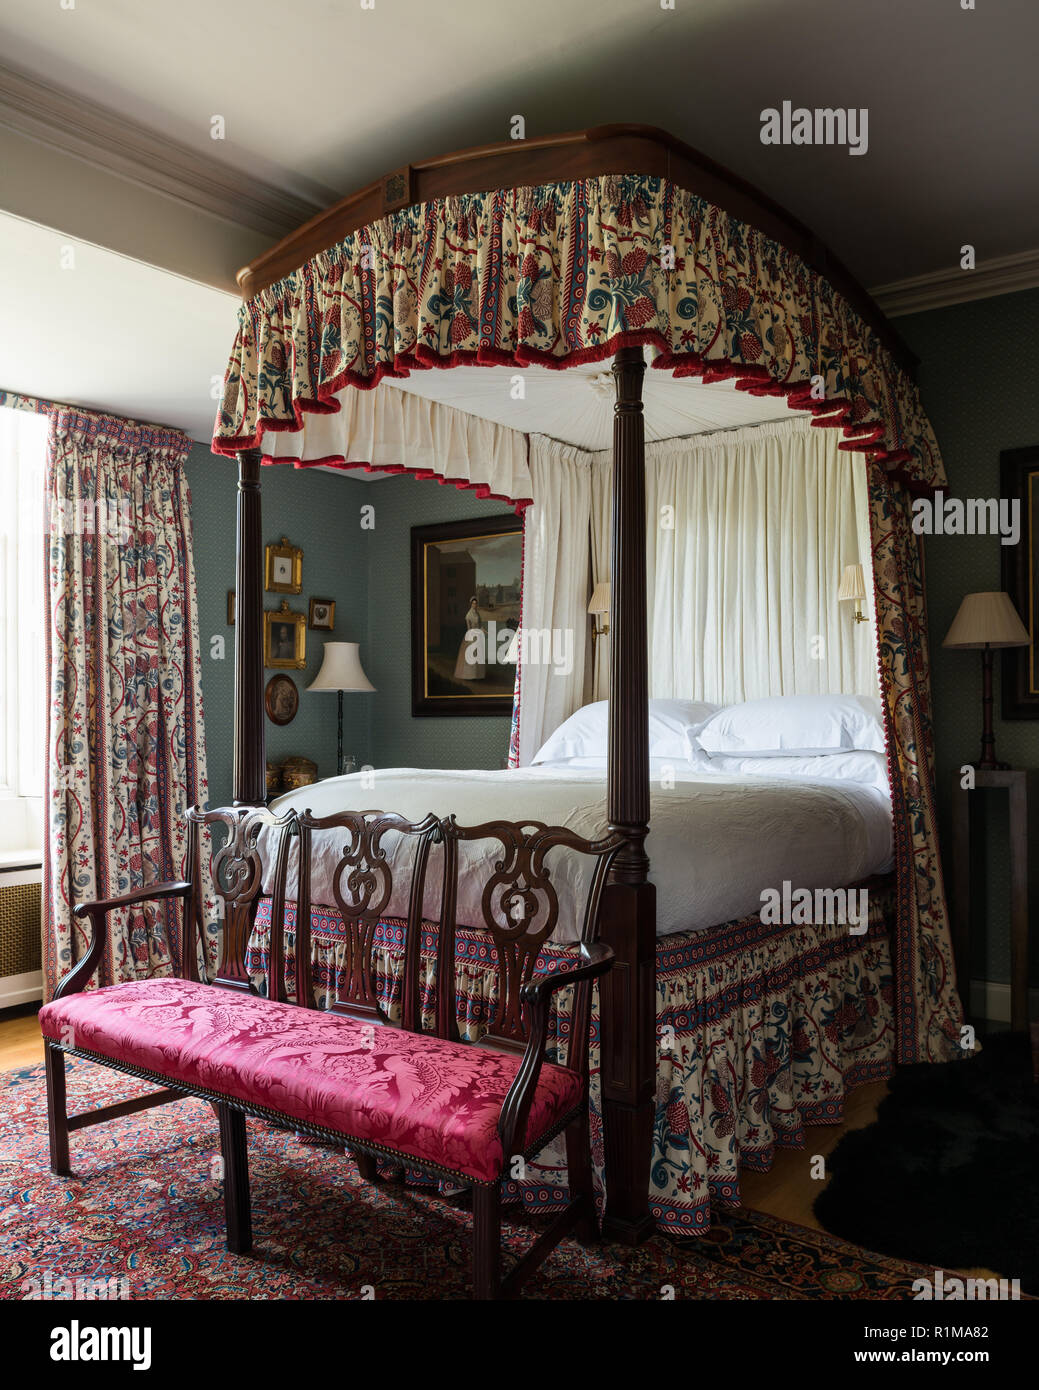 Canopy Bed In Victorian Style Bedroom Stock Photo Alamy